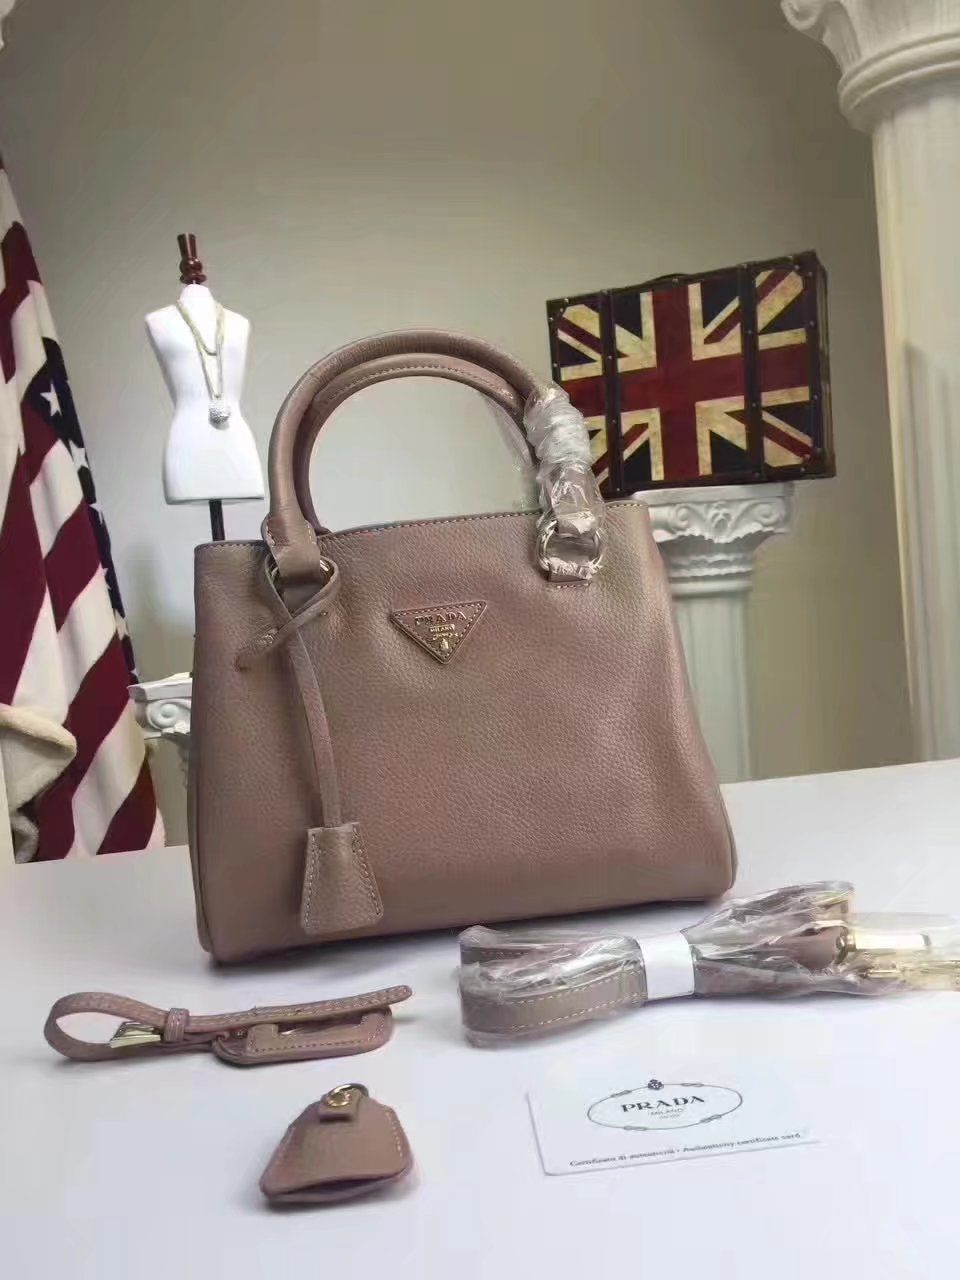 Prada Calf Leather Tote Double Leather Top Handle Bag Khaki